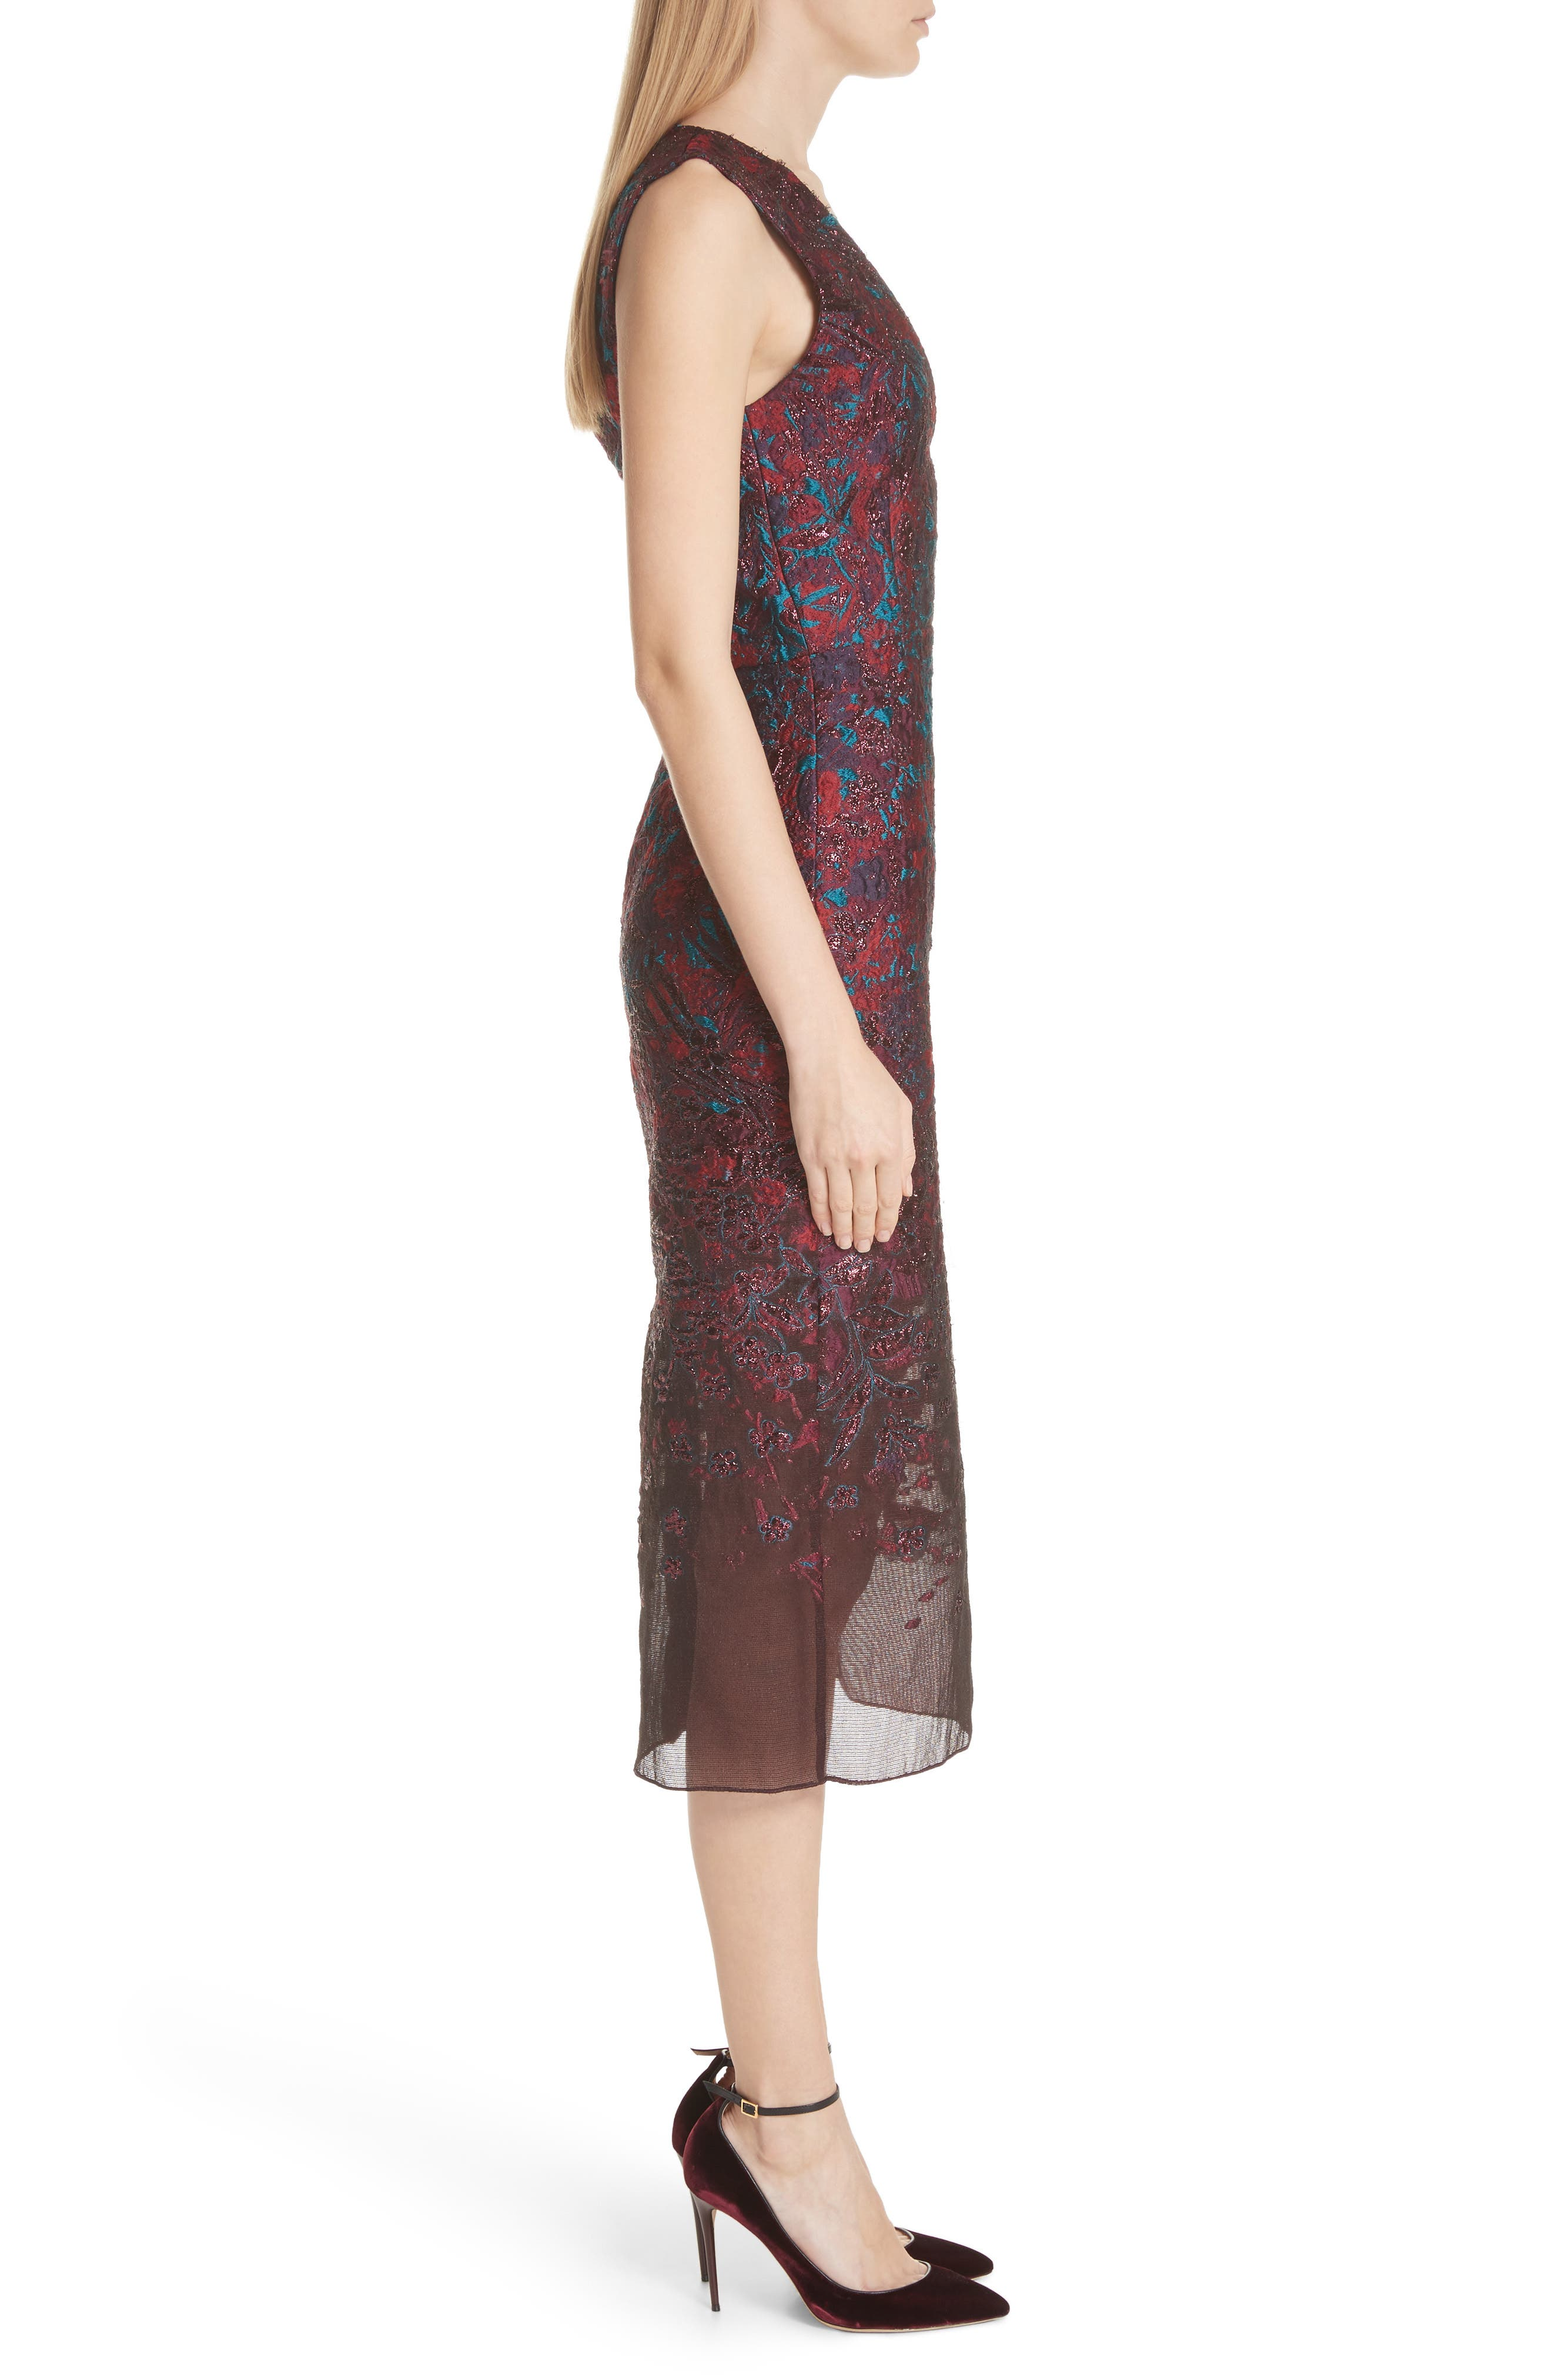 MALENE ODDERSHEDE BACH,                             May Cocktail Dress,                             Alternate thumbnail 3, color,                             600